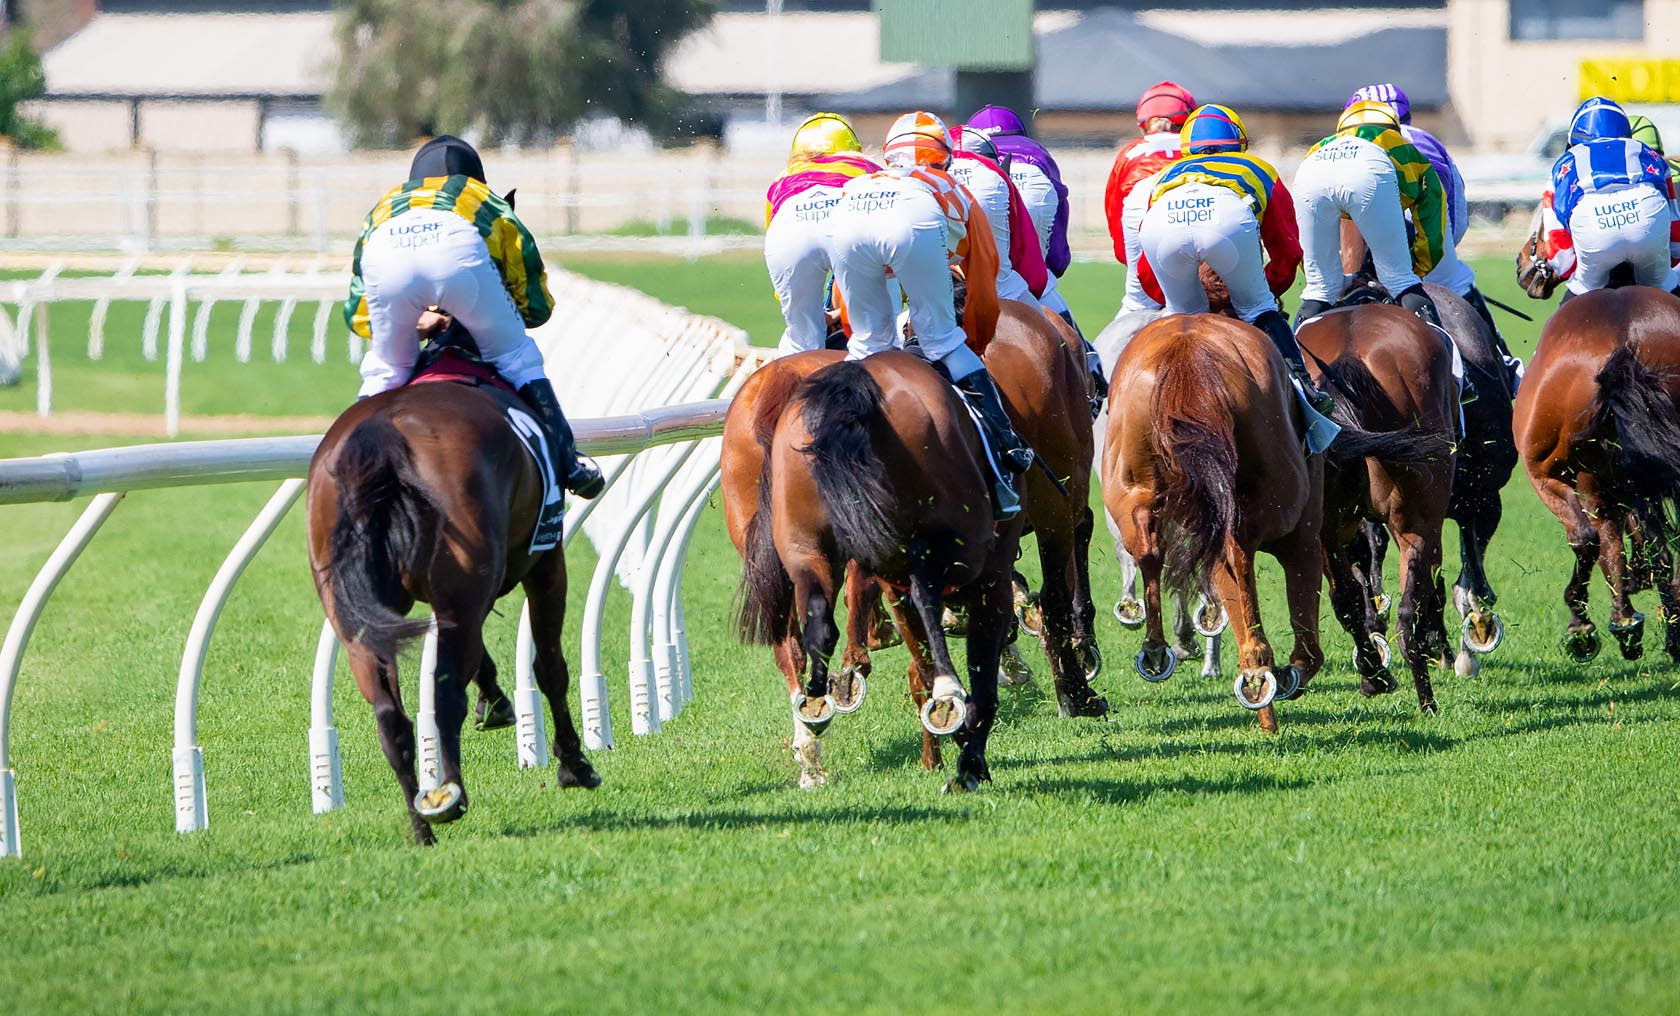 Viewing racing horses from behind